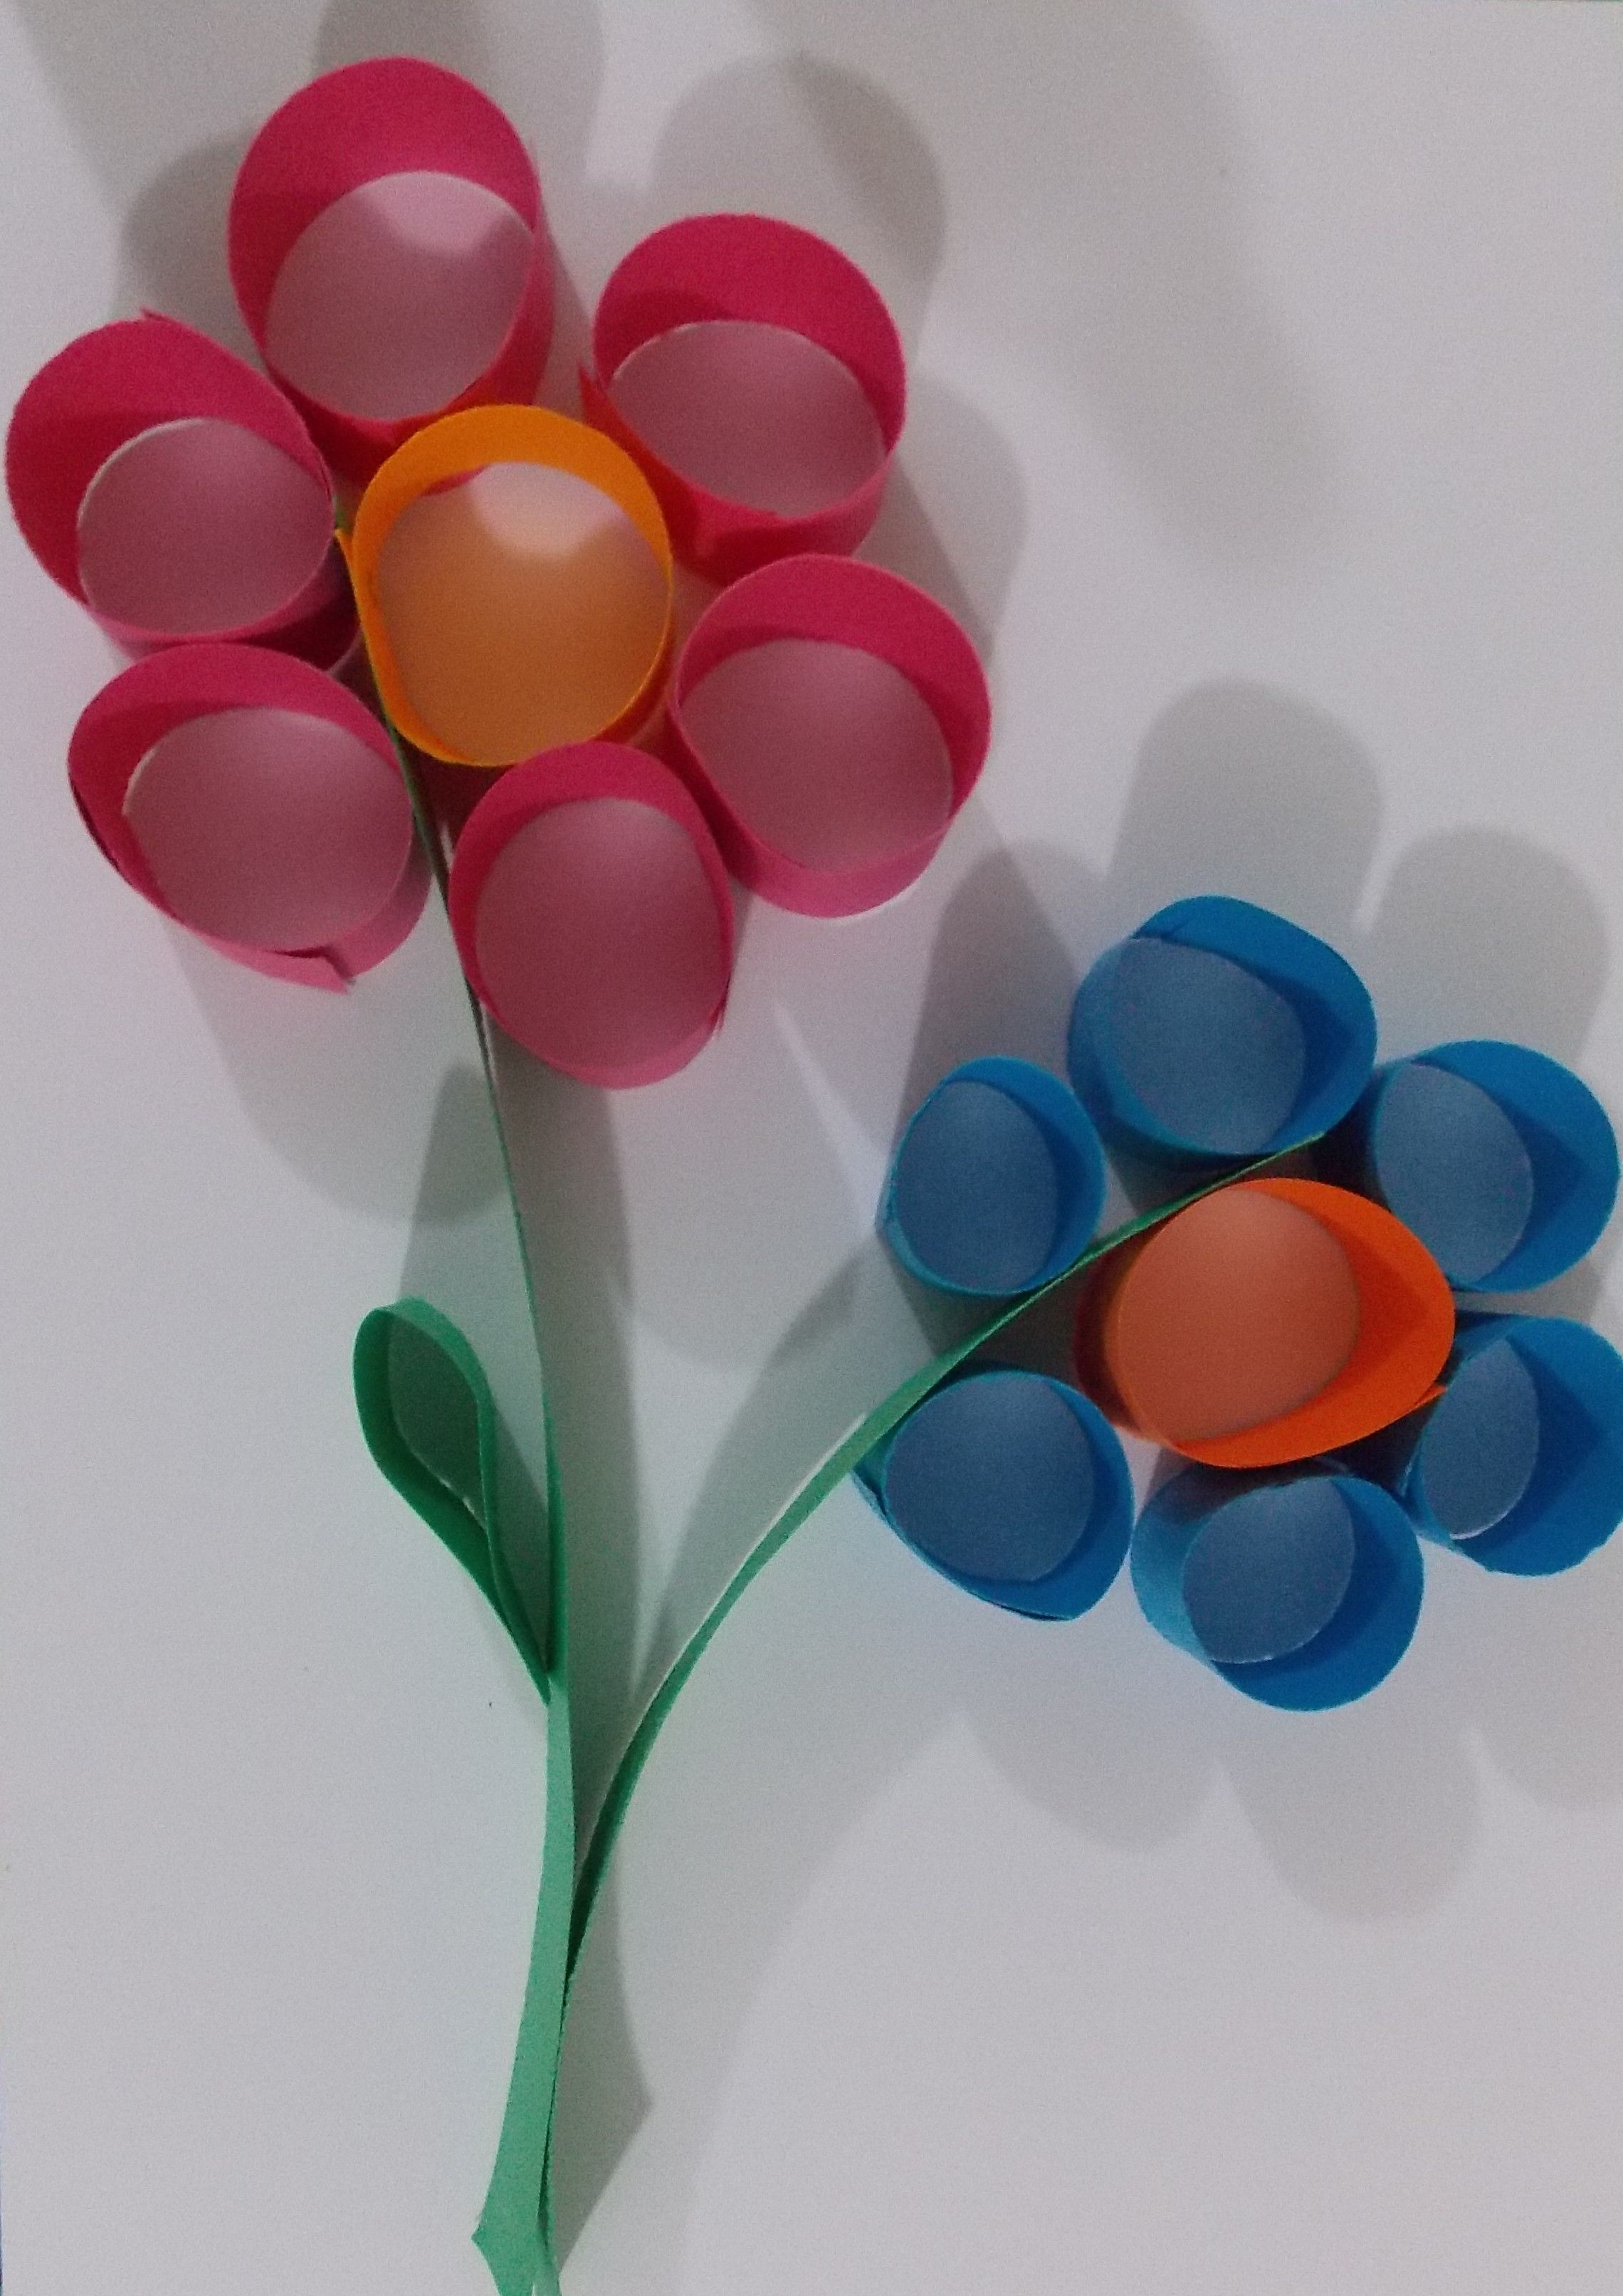 Superb Easy Arts And Crafts Ideas For Kids Part - 14: Flower Paper Craft. Crafts For PreschoolersCrafts For KidsArts And CraftsFun  CraftsCreative CraftsSimple ...